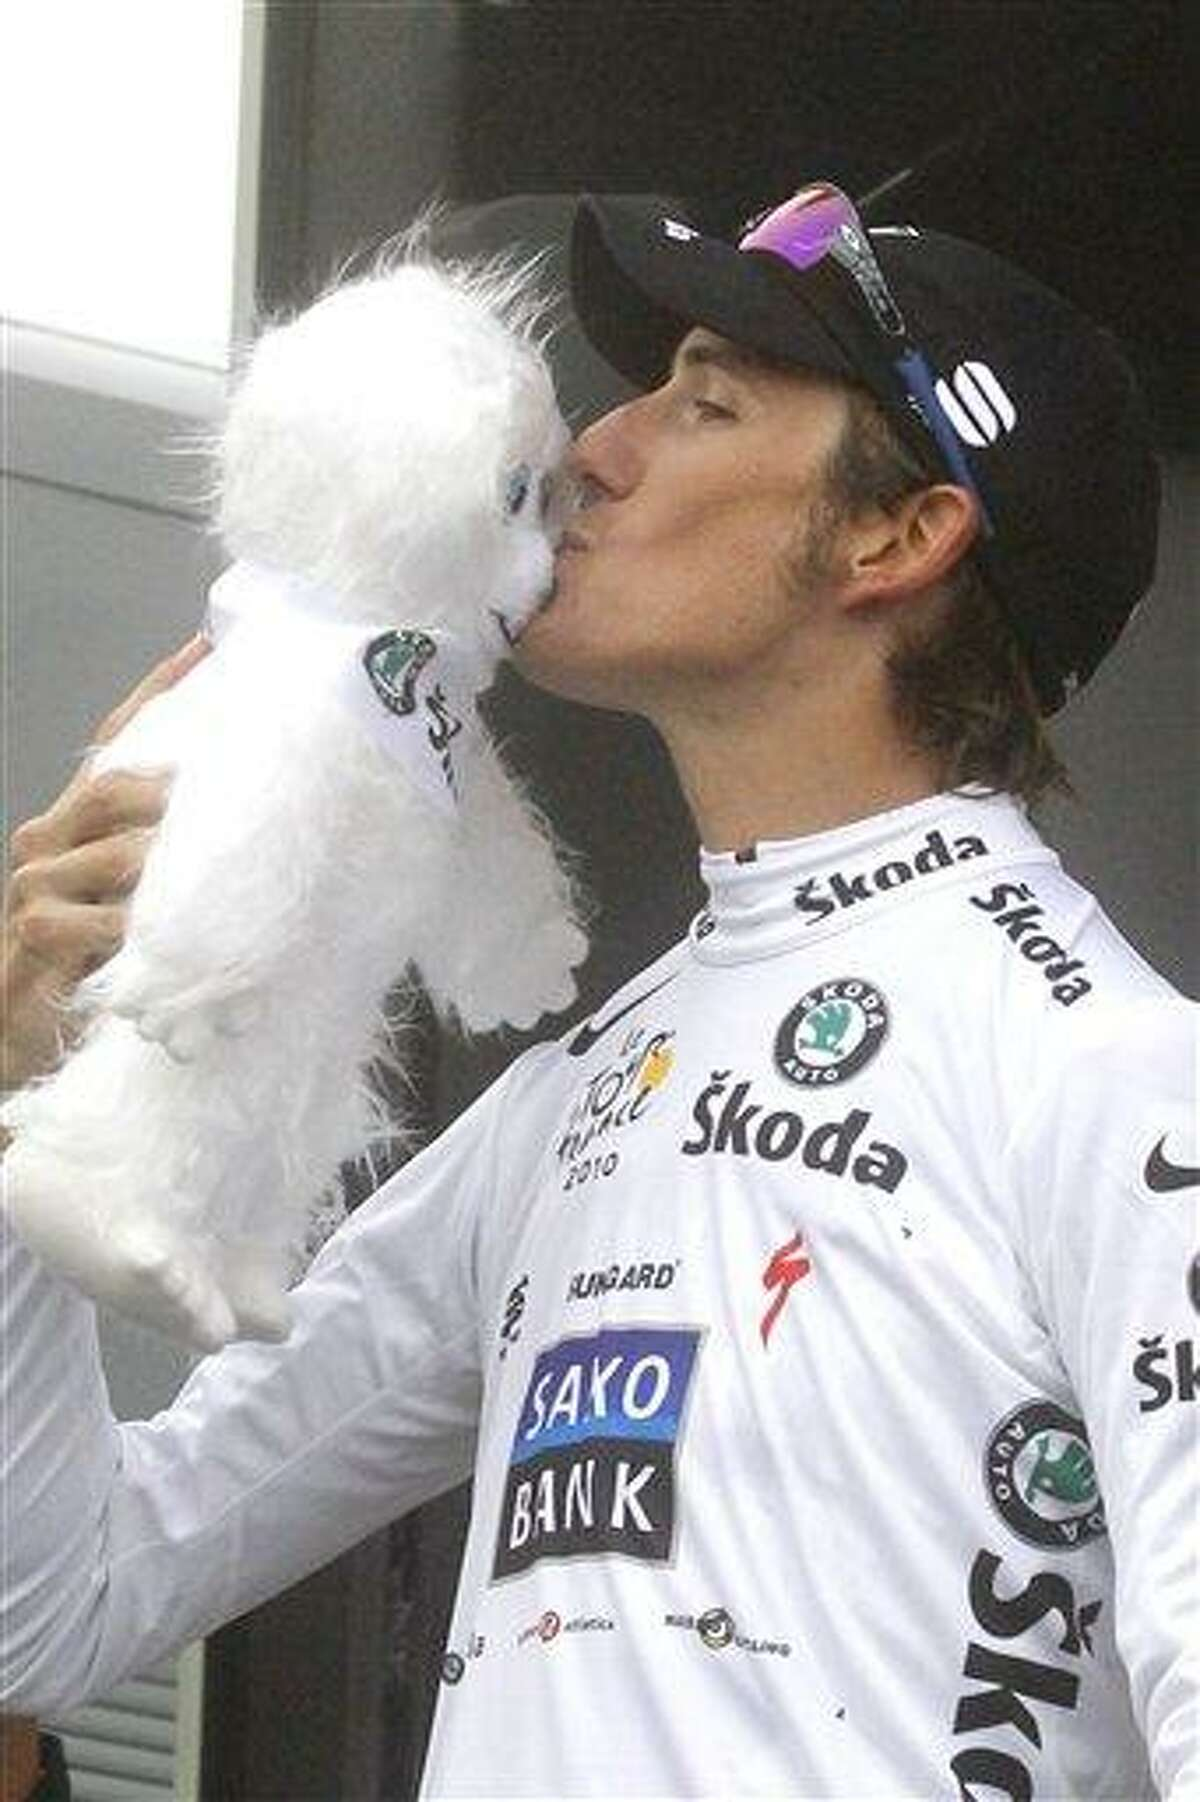 Stage winner Andy Schleck of Luxembourg, wearing the best young rider's white jersey, kisses the mascot on the podium after the 17th stage of the Tour de France cycling race over 174 kilometers (108.1 miles) with start in Pau and finish on Tourmalet pass, Pyrenees region, France, Thursday, July 22, 2010. (AP Photo/Laurent Rebours)